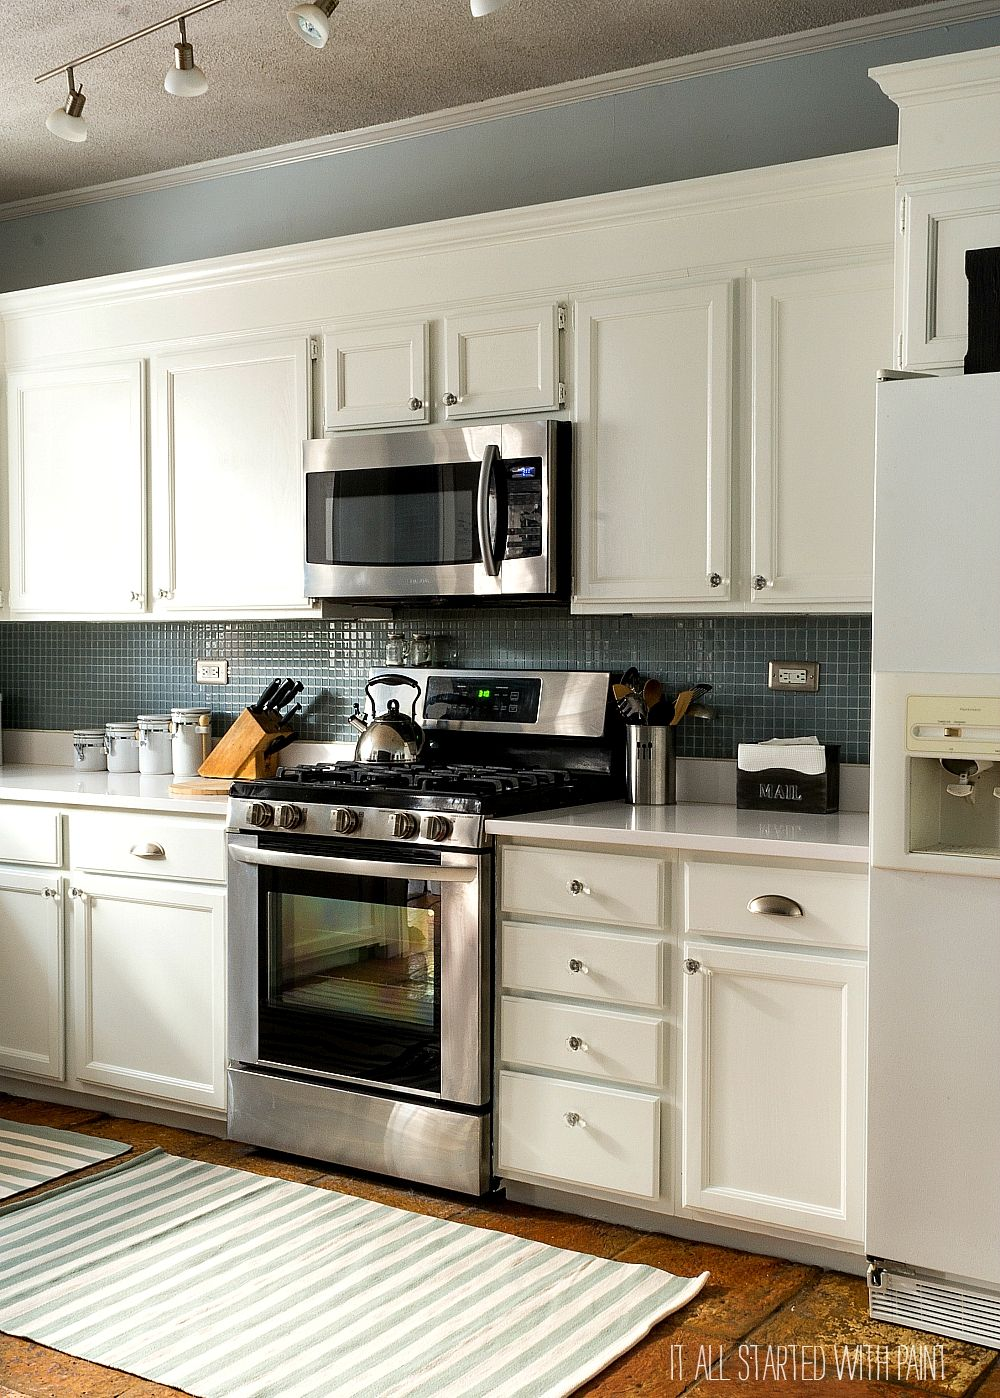 Kensington Kitchen Cabinets: Builder Grade Kitchen Makeover With White Paint